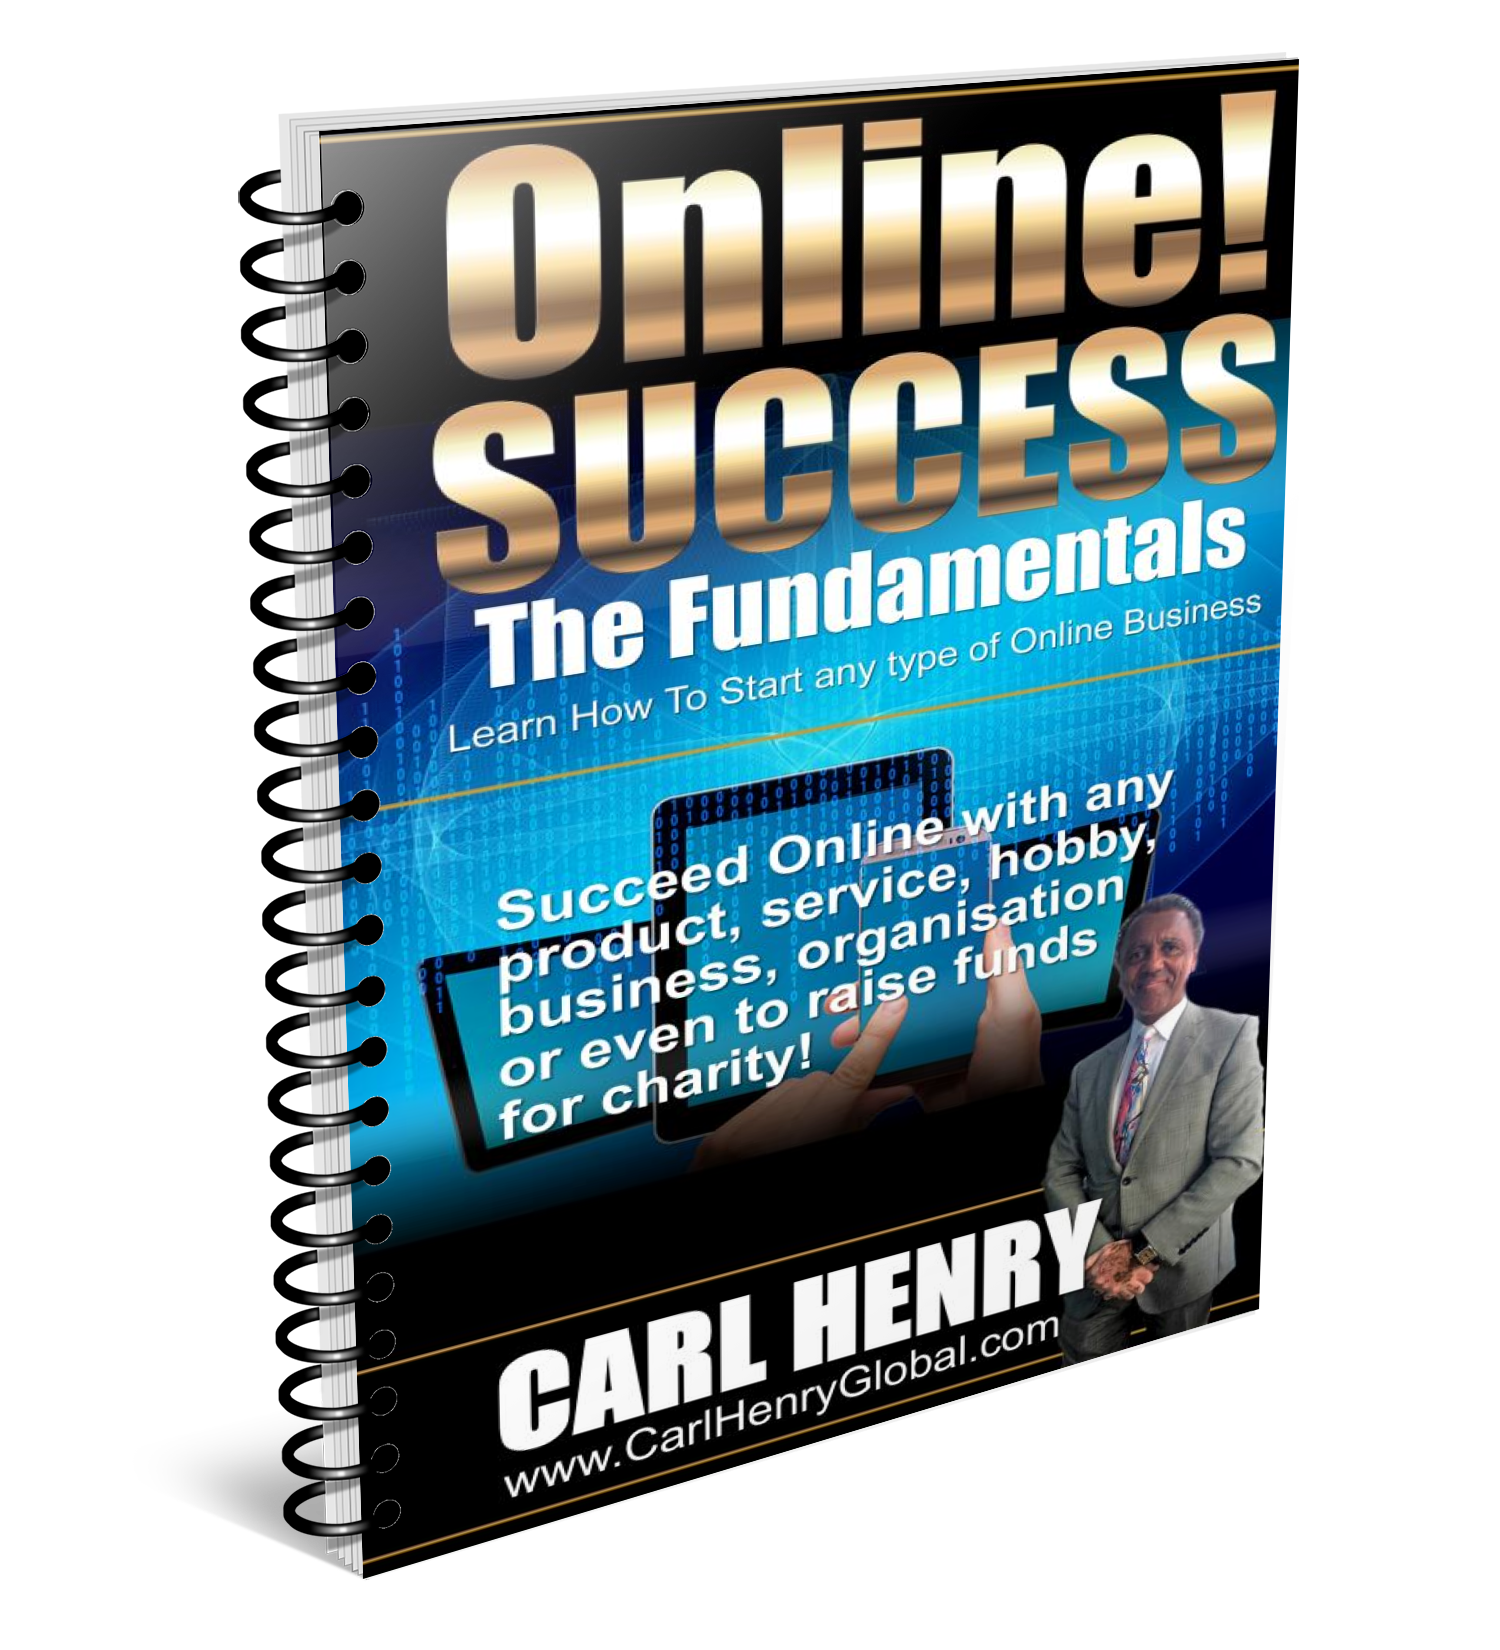 Carl-Henry-ONLINE-SUCCESS-eBook-3-1500x1650.png